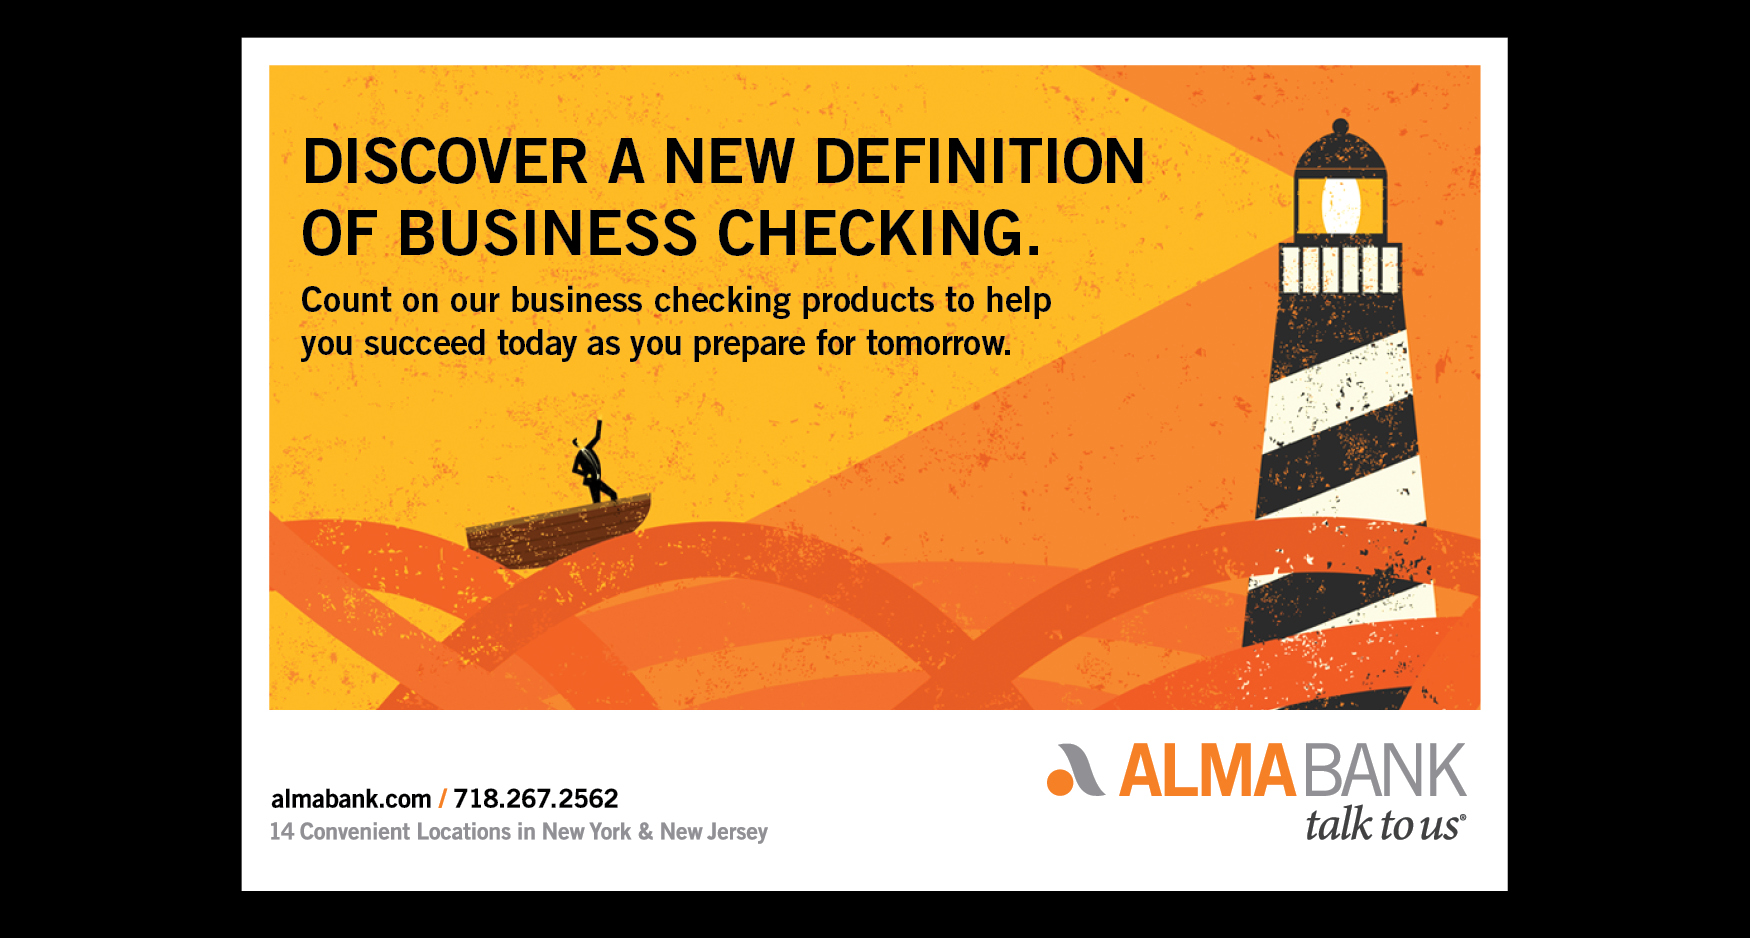 Alma Slide 3 - ALMA BANK - BUSINESS CHECKING PROMOTION